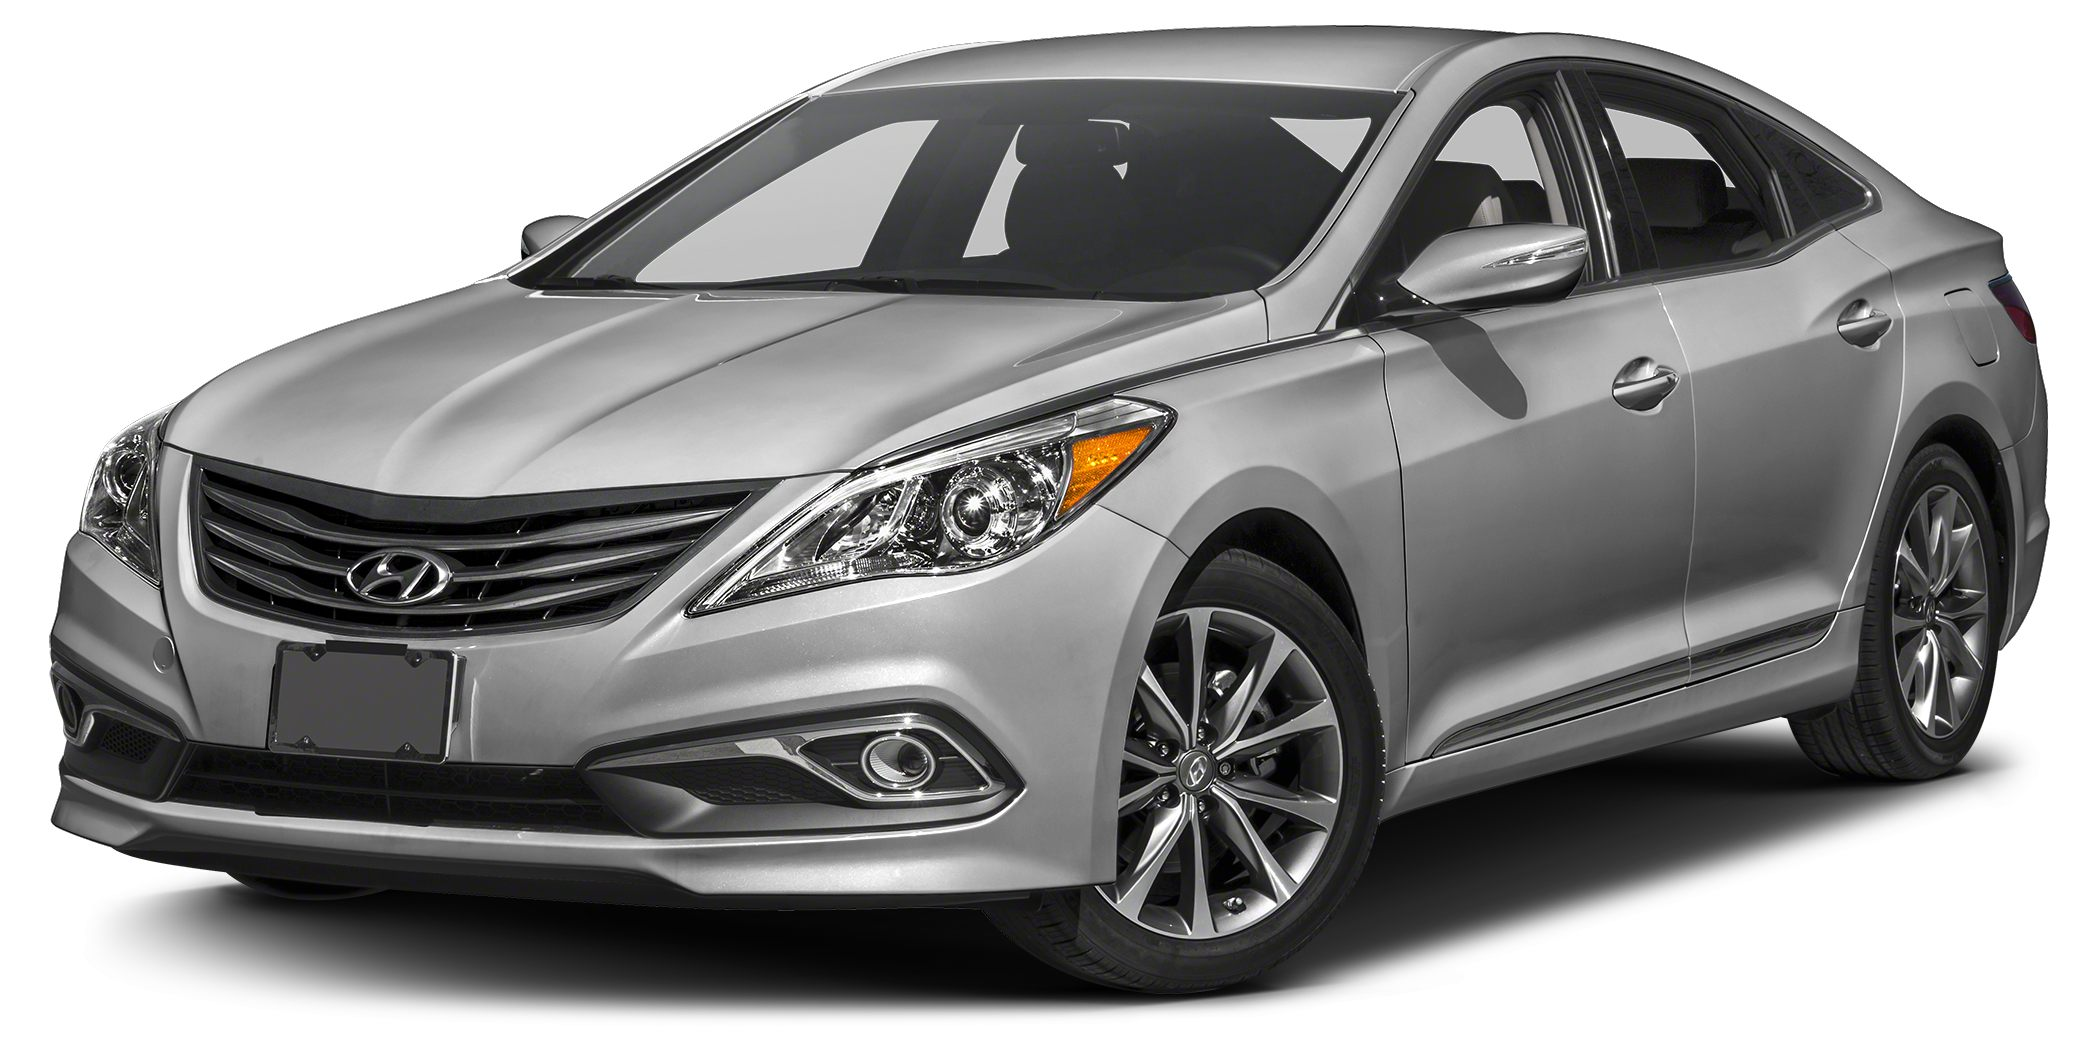 2017 Hyundai Azera Base The Our Cost Price reflects all applicable manufacturer rebates andor inc